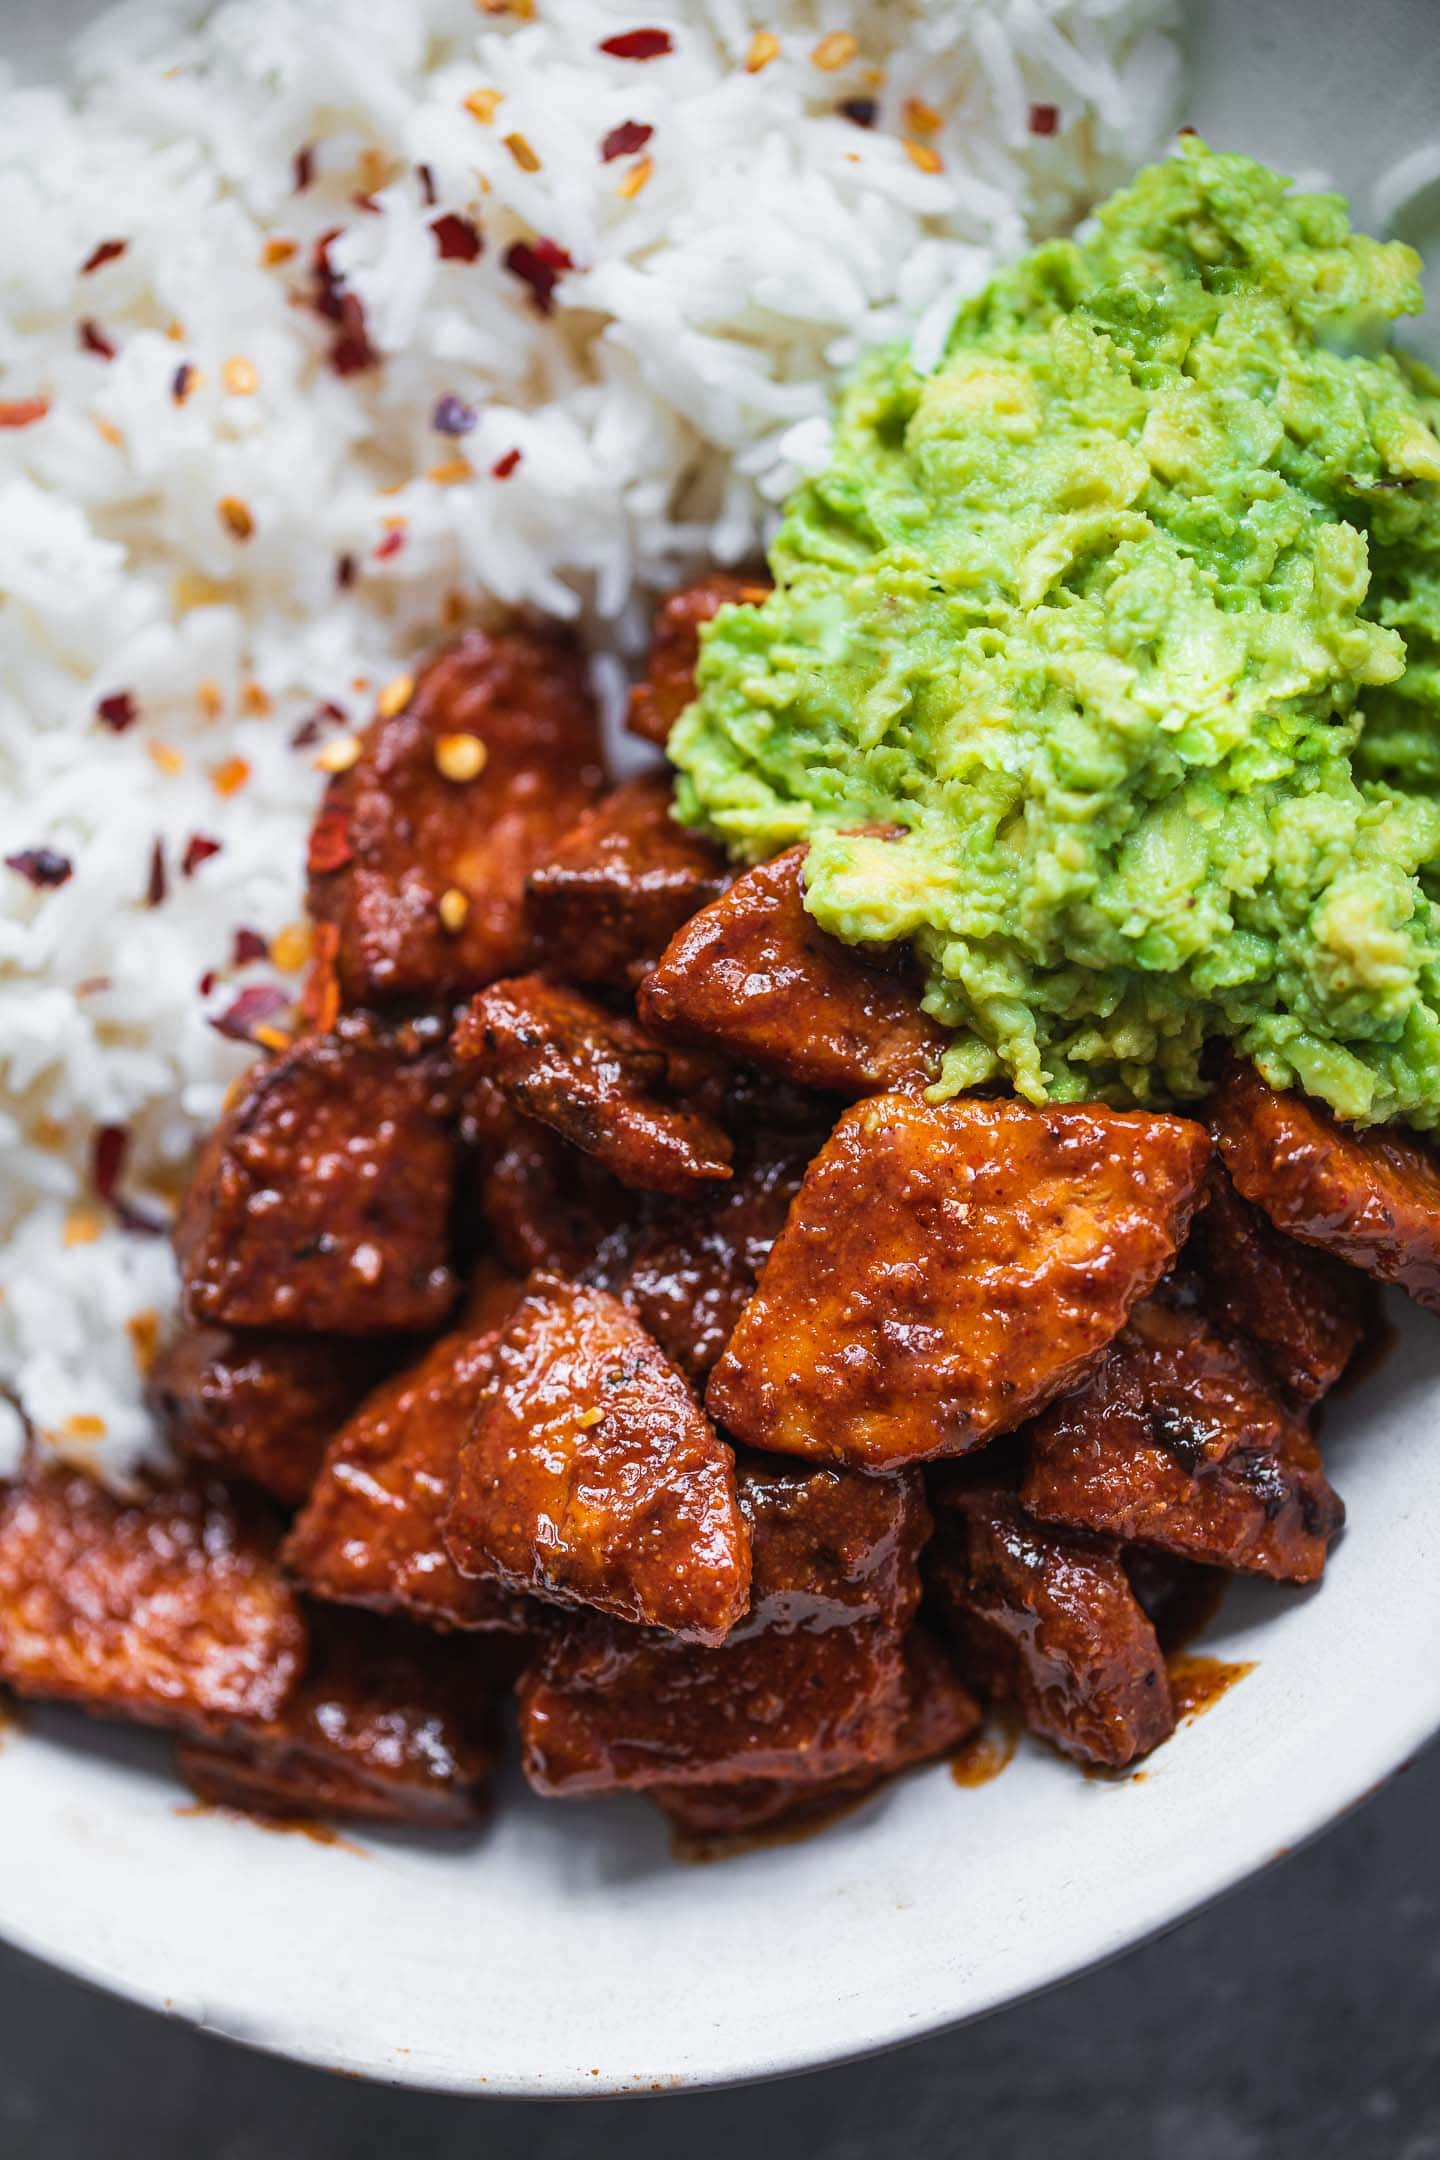 Vegan tempeh with BBQ sauce, avocado and rice